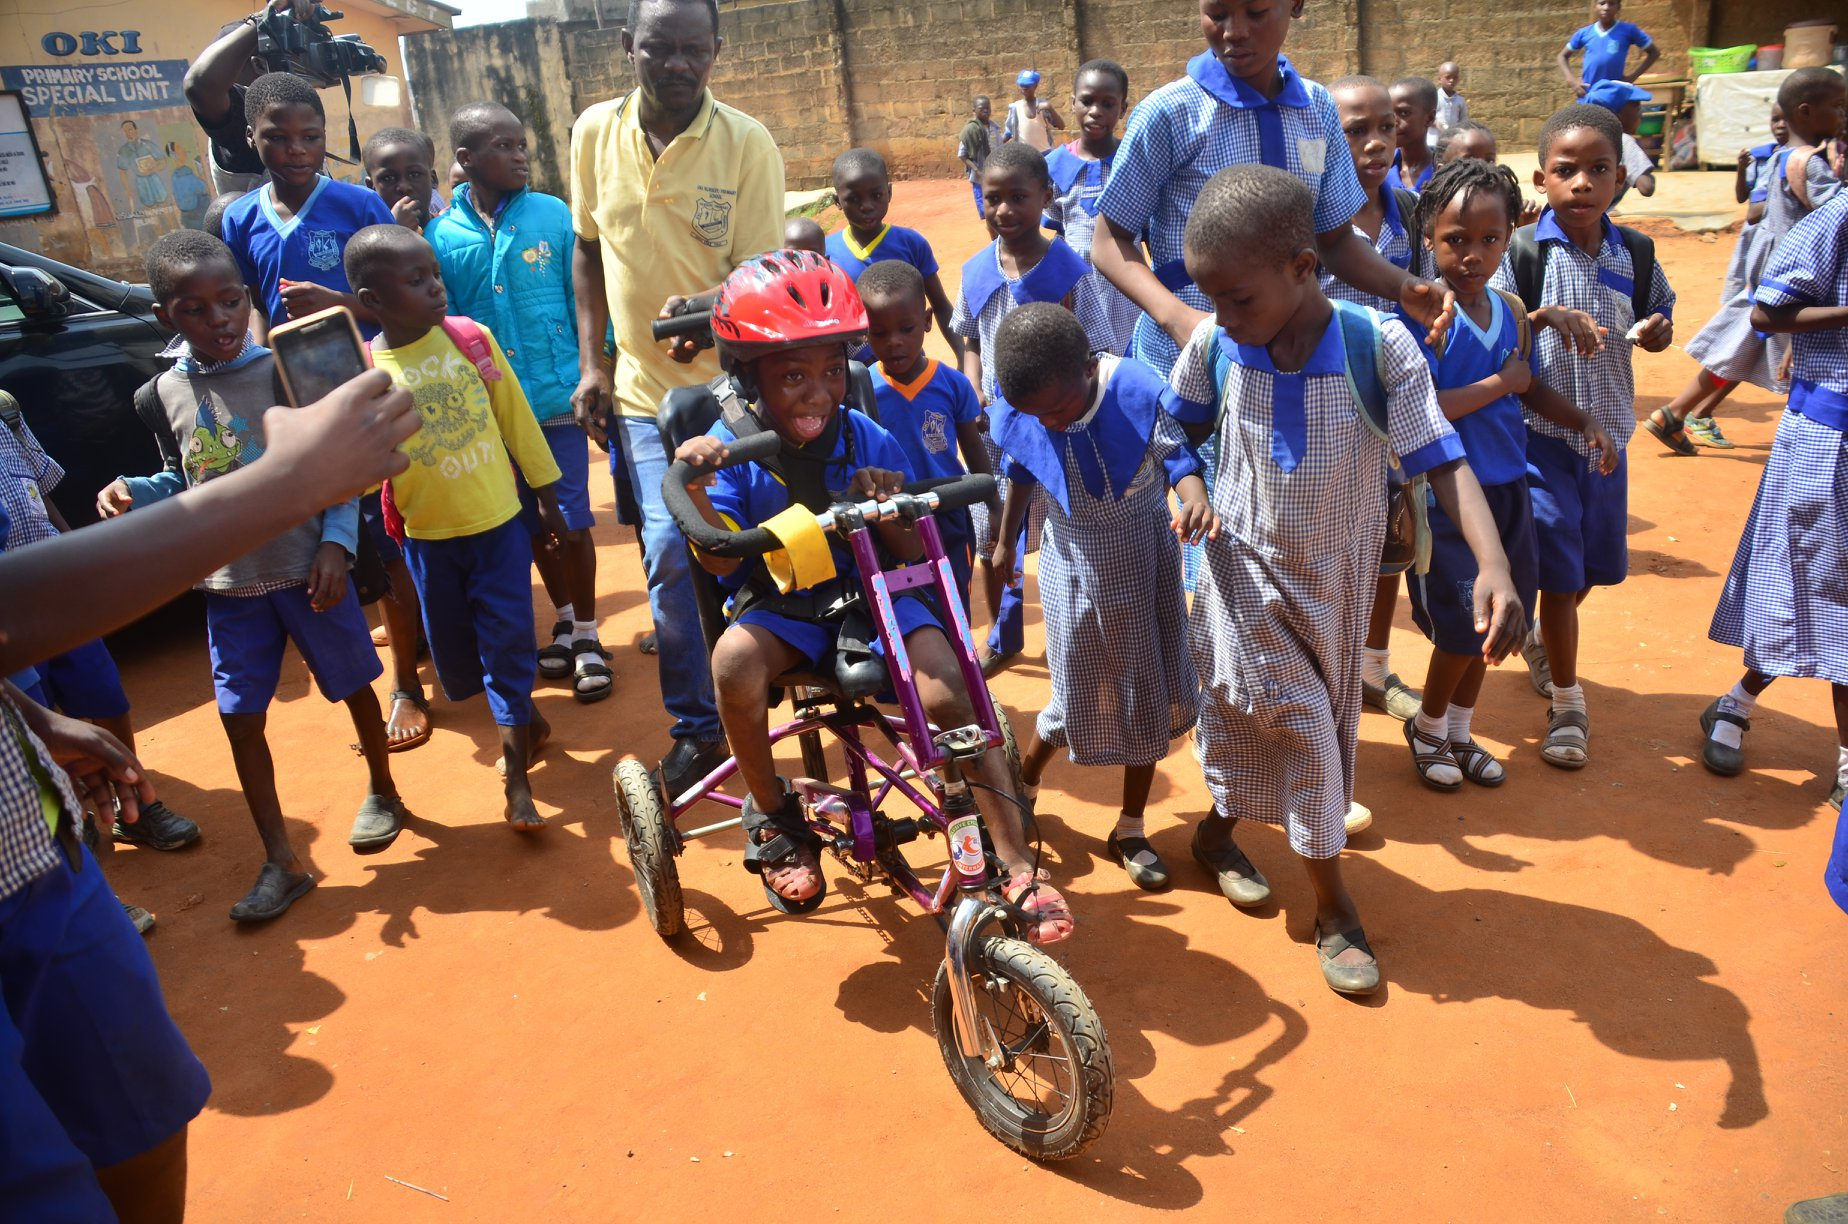 A young Nigerian boy smiles with awe as he pedals an adaptive bike. His classmates and some adults surround him.